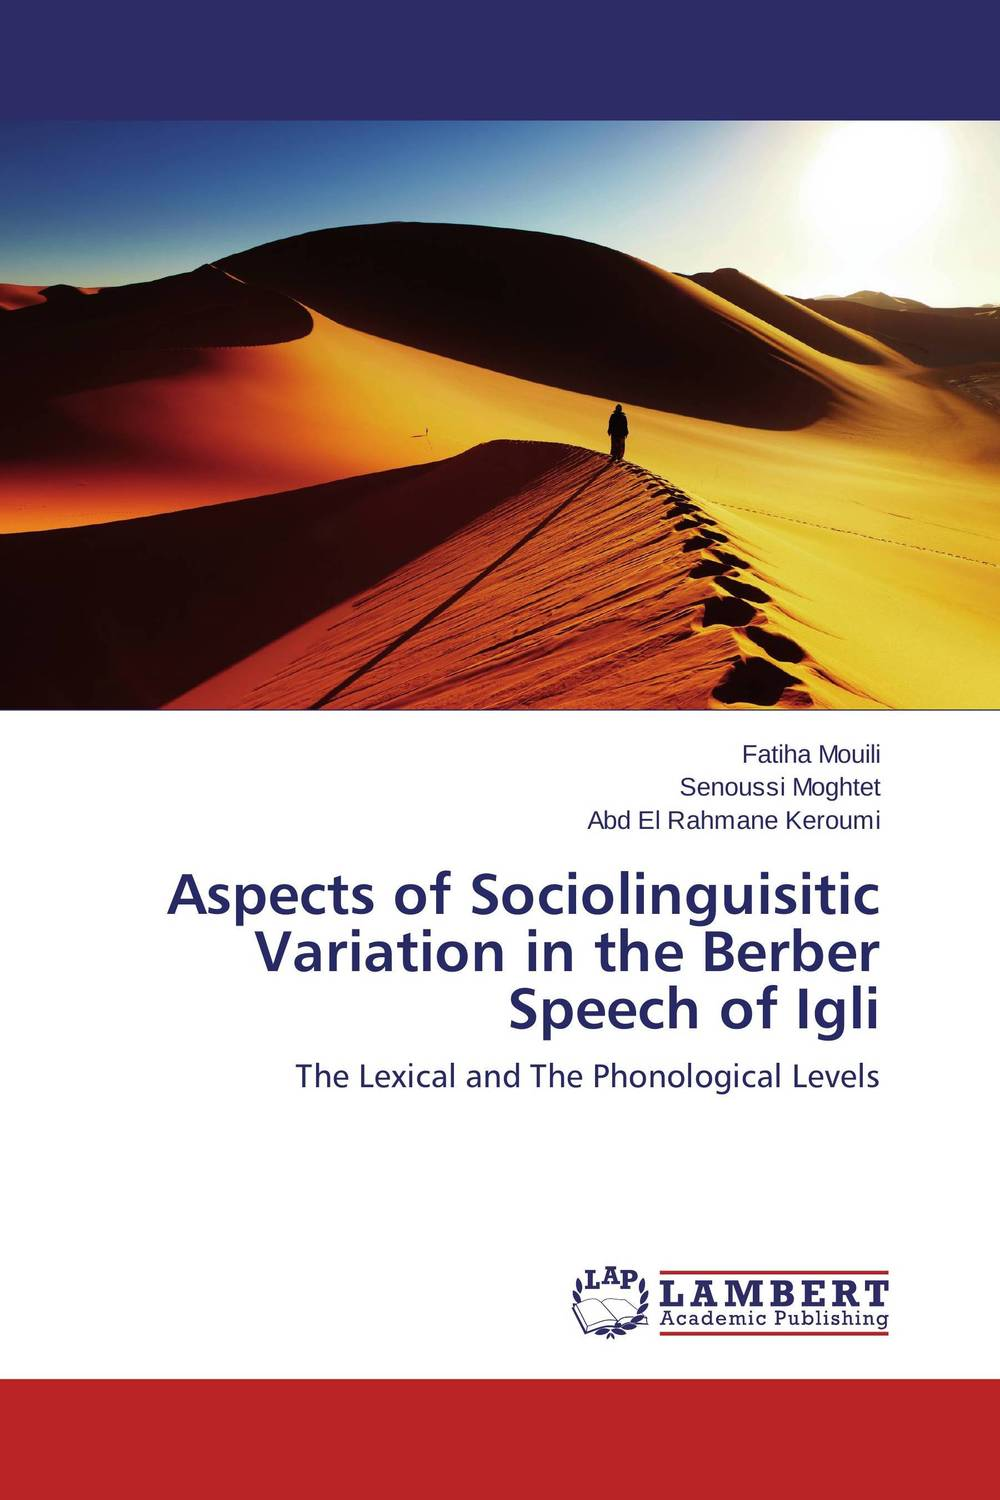 Aspects of Sociolinguisitic Variation in the Berber Speech of Igli linguistic variation in a multilingual setting